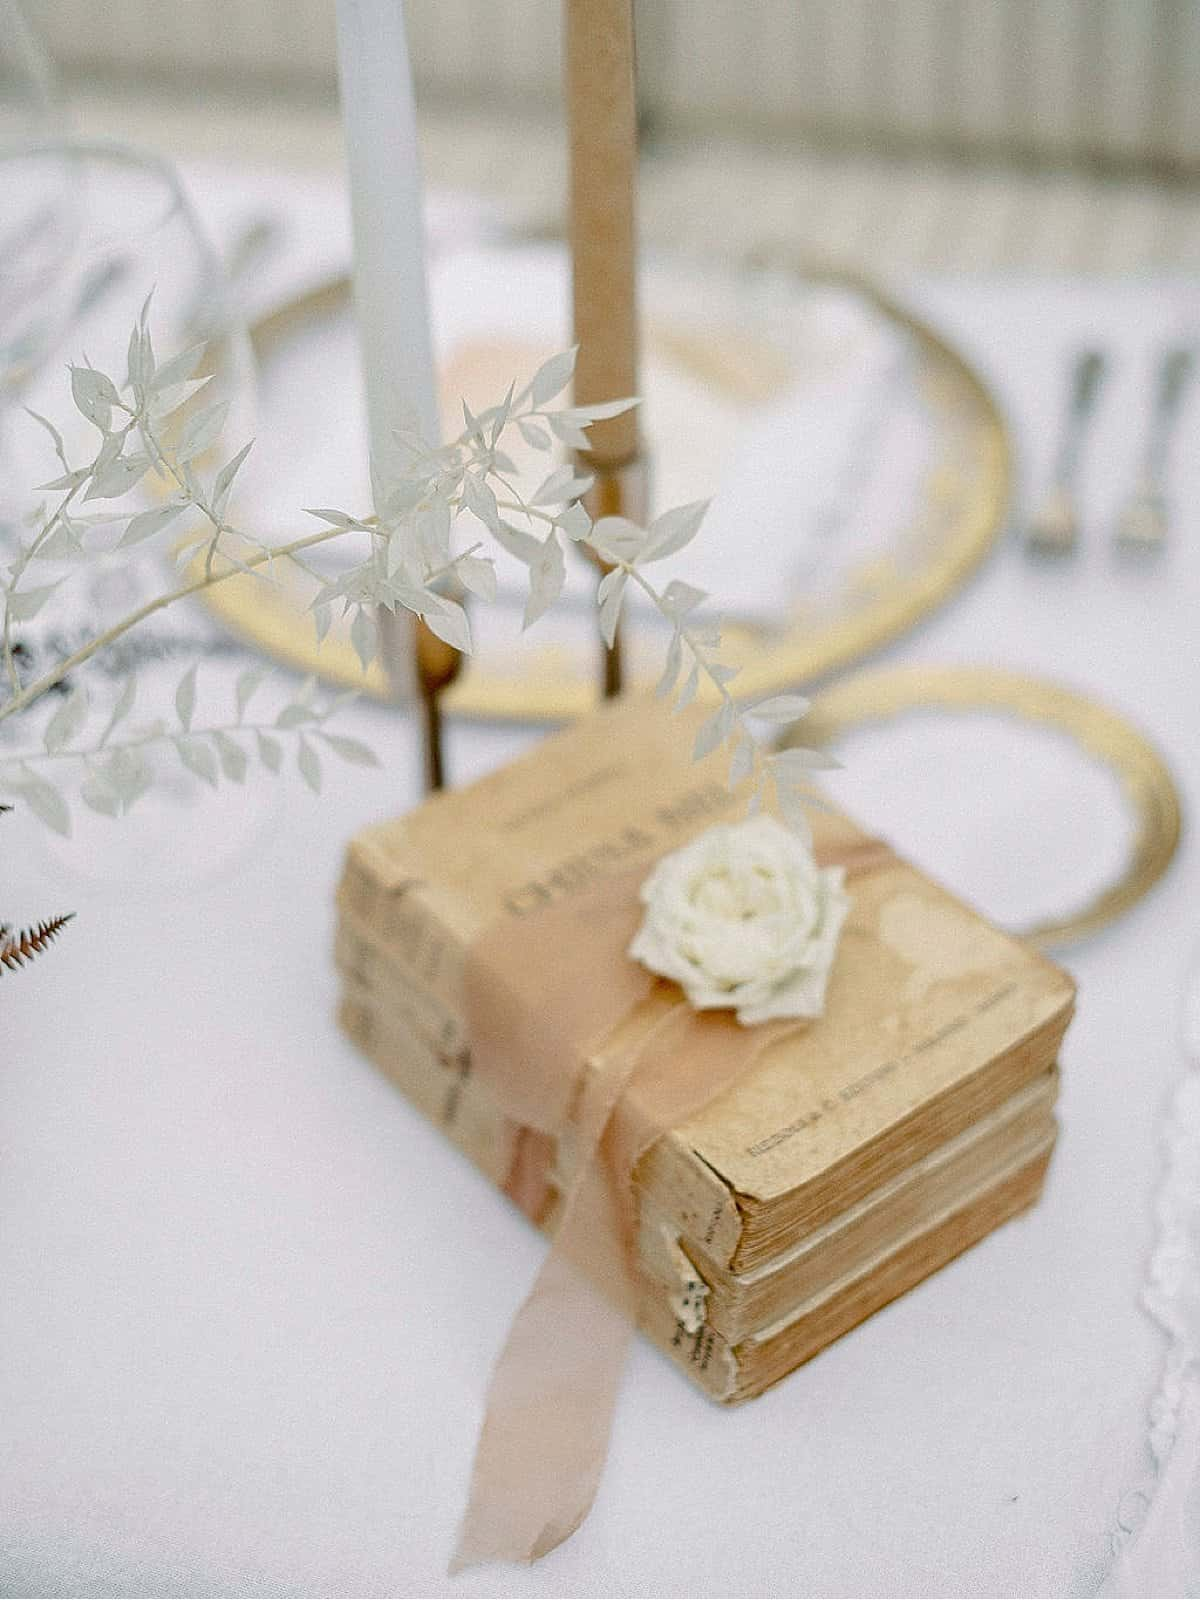 Muse Infinite Photographer Gifts for Wedding Photographer Friends Gift Wedding Favors